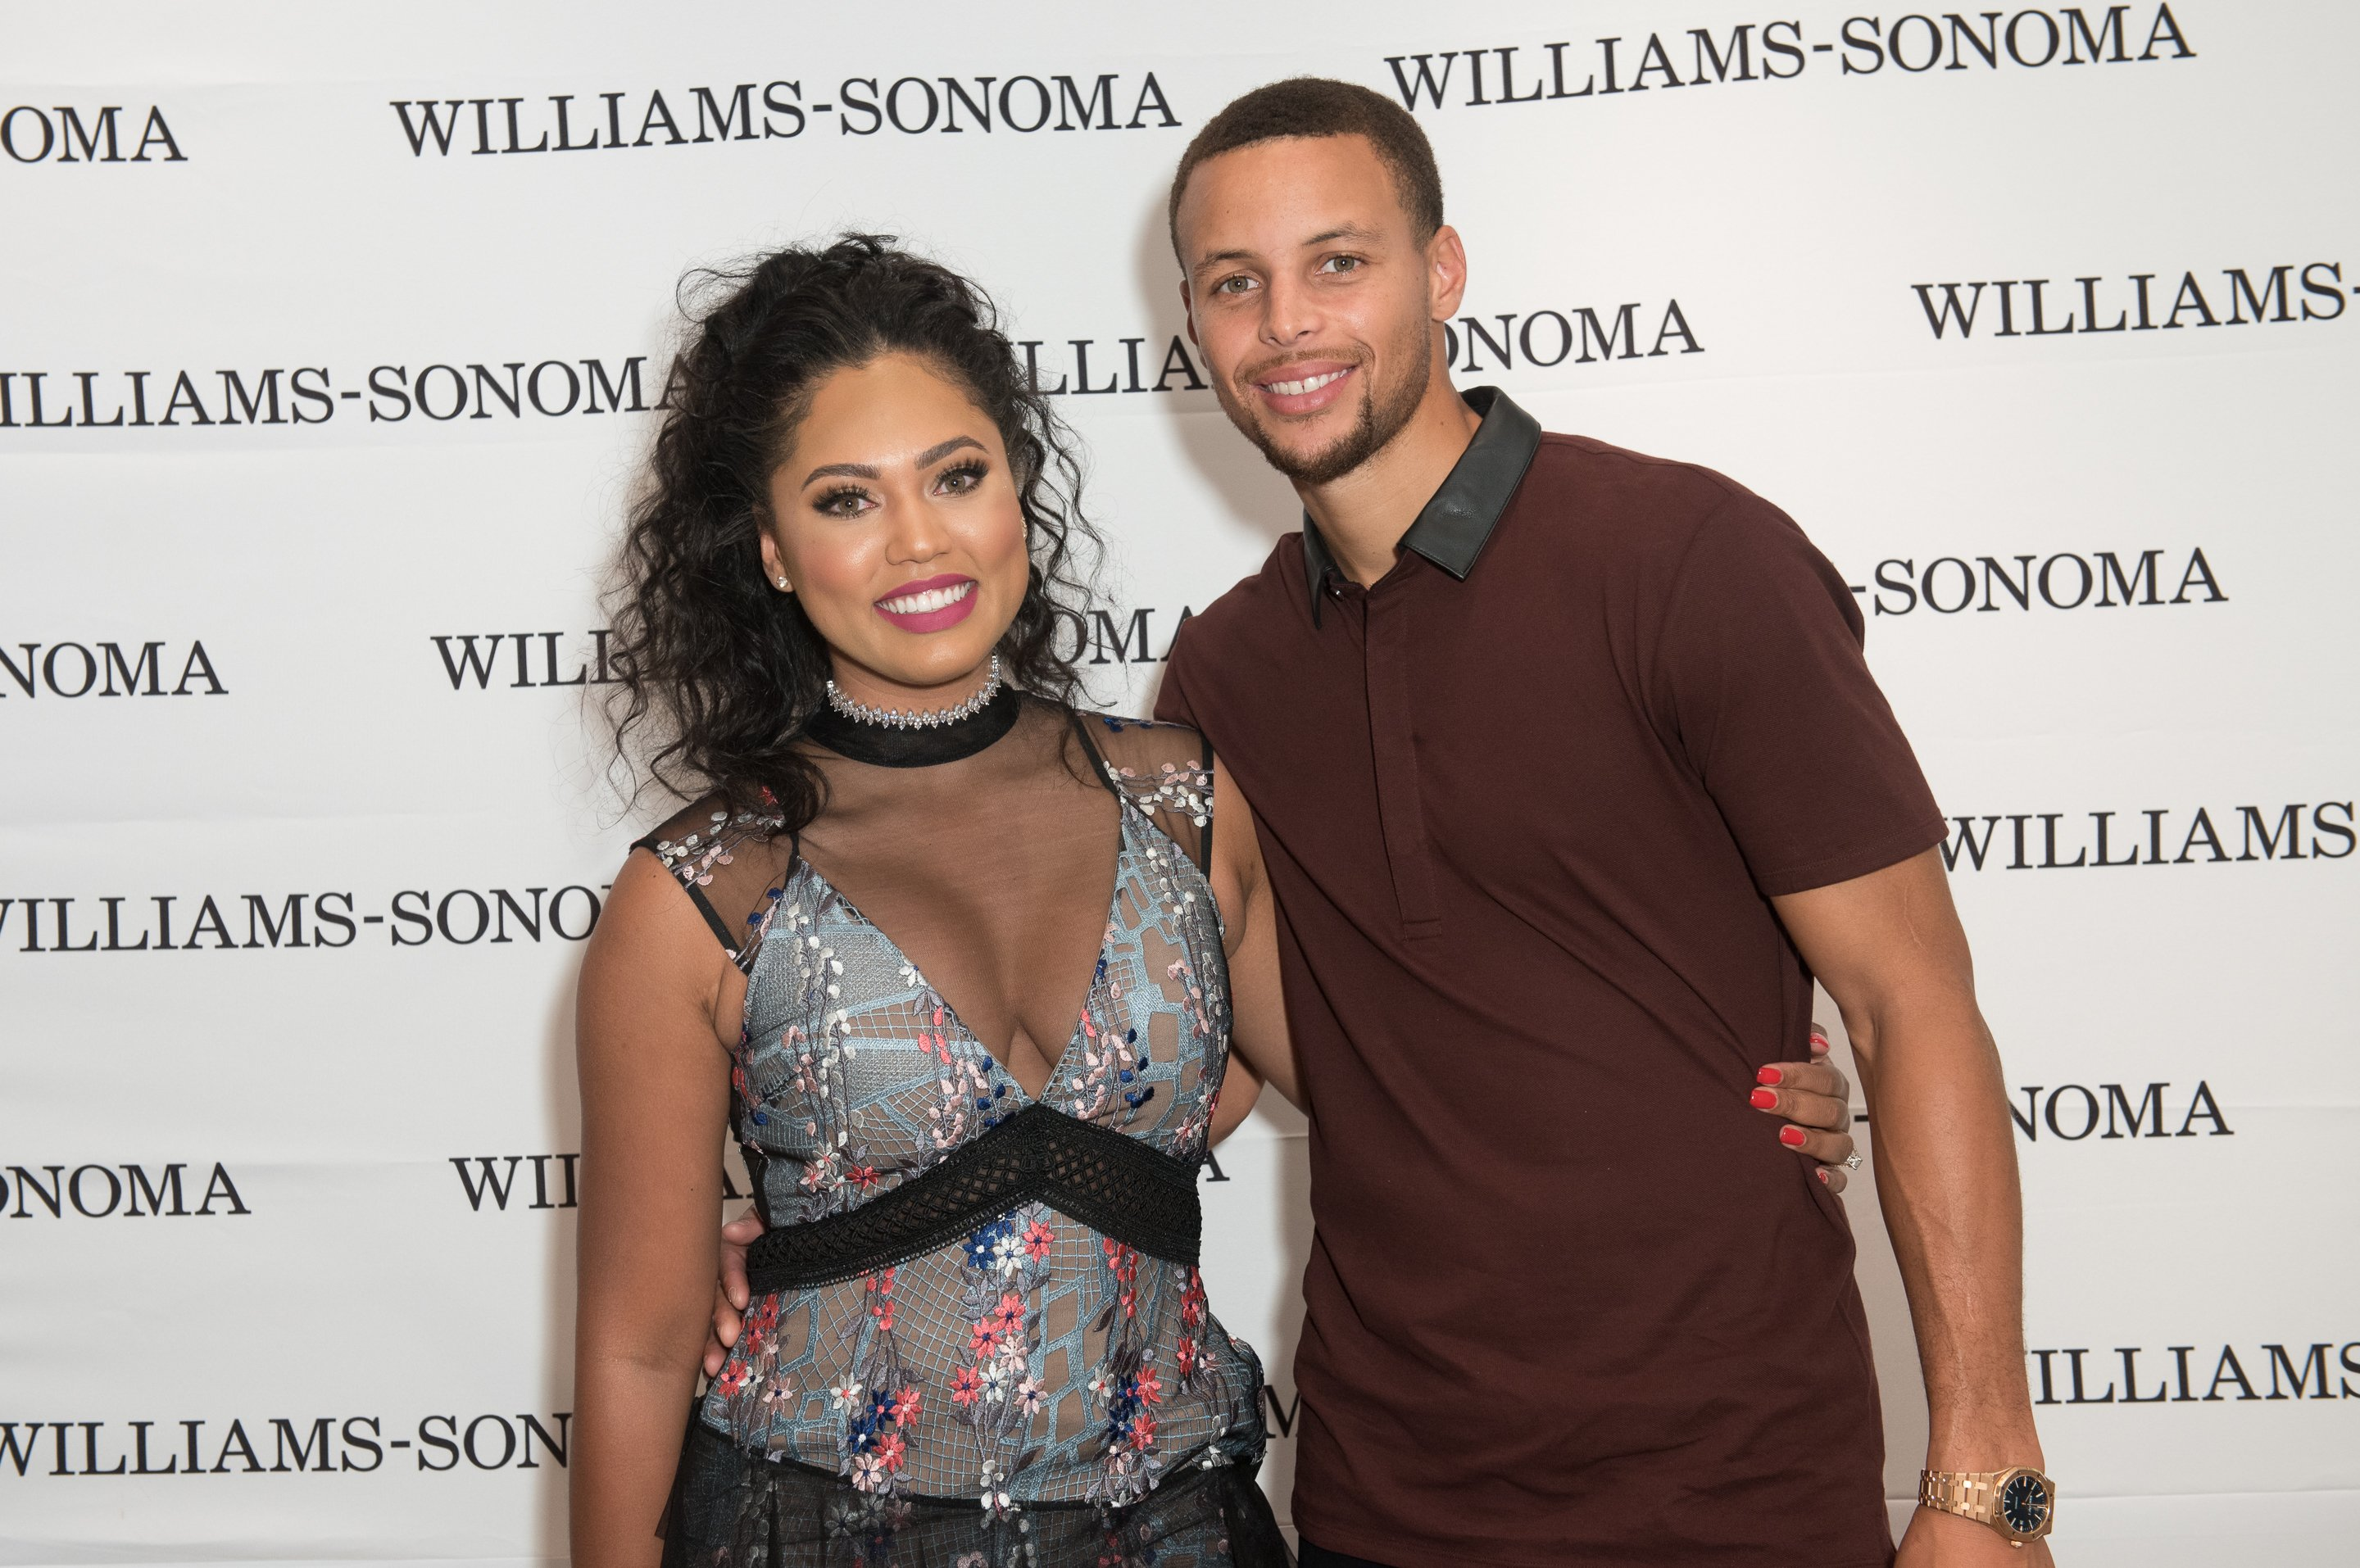 Ayesha Curry and Stephen Curry attend the Williams-Sonoma Ayesha Curry Book Signing at Williams-Sonoma Columbus Circle | Photo: Getty Images